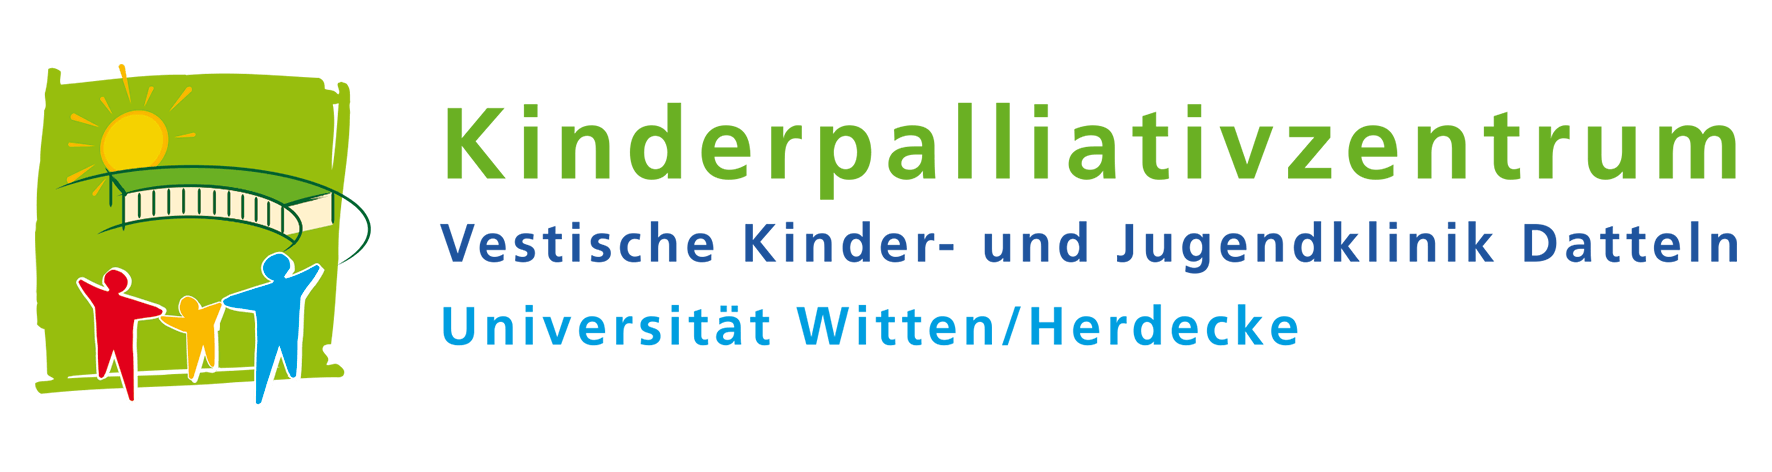 Kinderpalliativzentrum Datteln